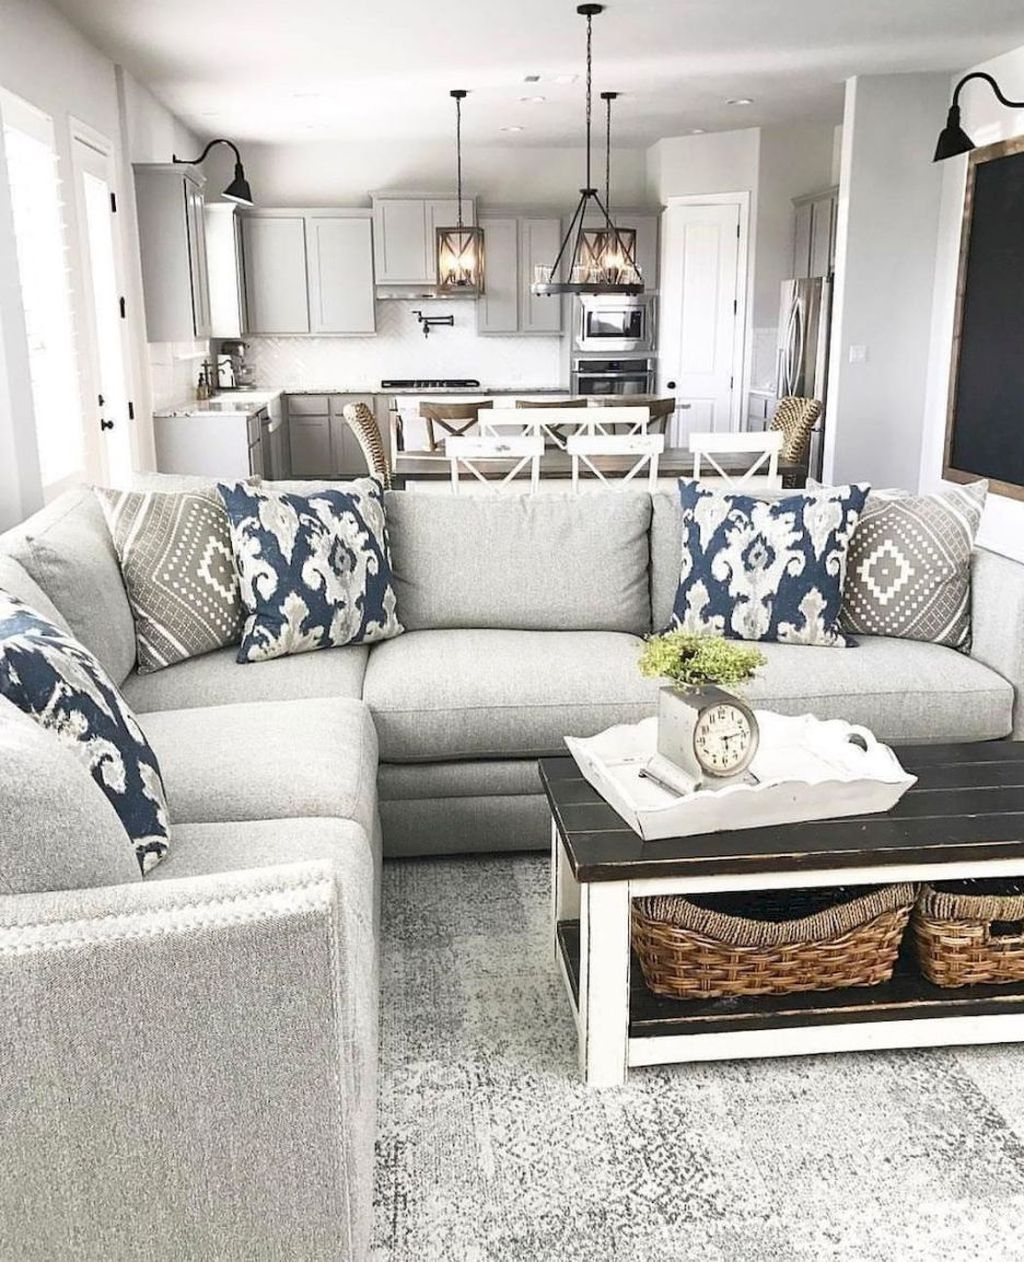 48 Inspiring Modern Farmhouse Style Decoration Ideas For Your Living Room images